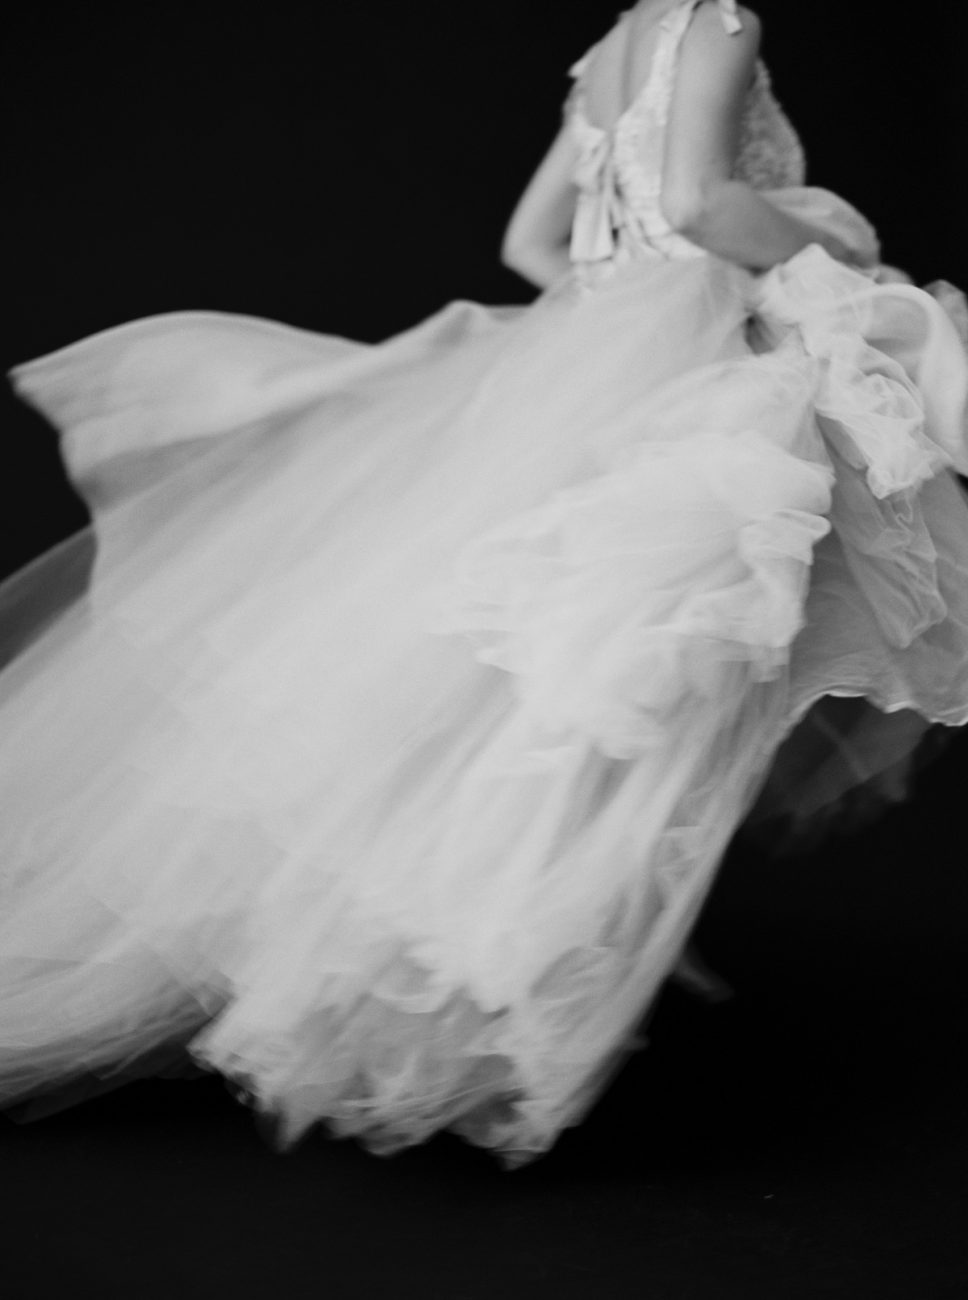 Moody Black Wedding Inspiration with black and white photo showing movement of a gown